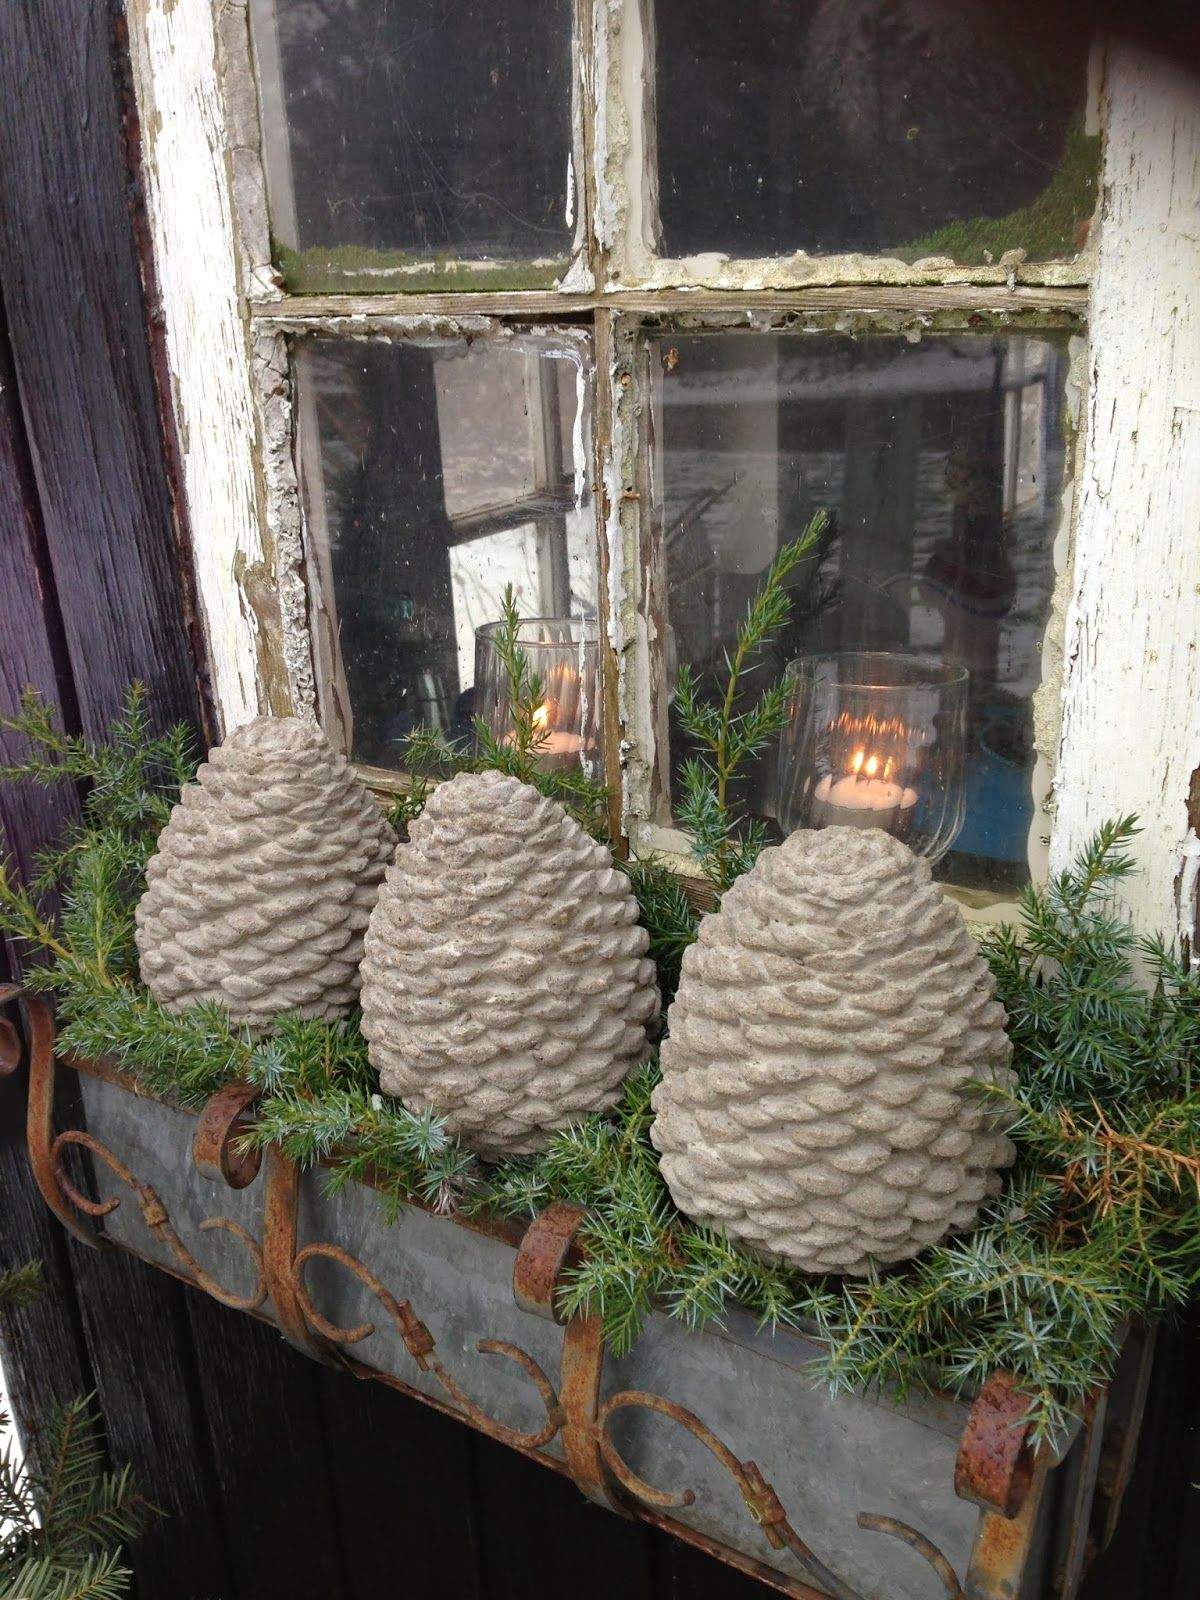 Concrete Sement Pine Cones Made With A Mold Diy On Site In